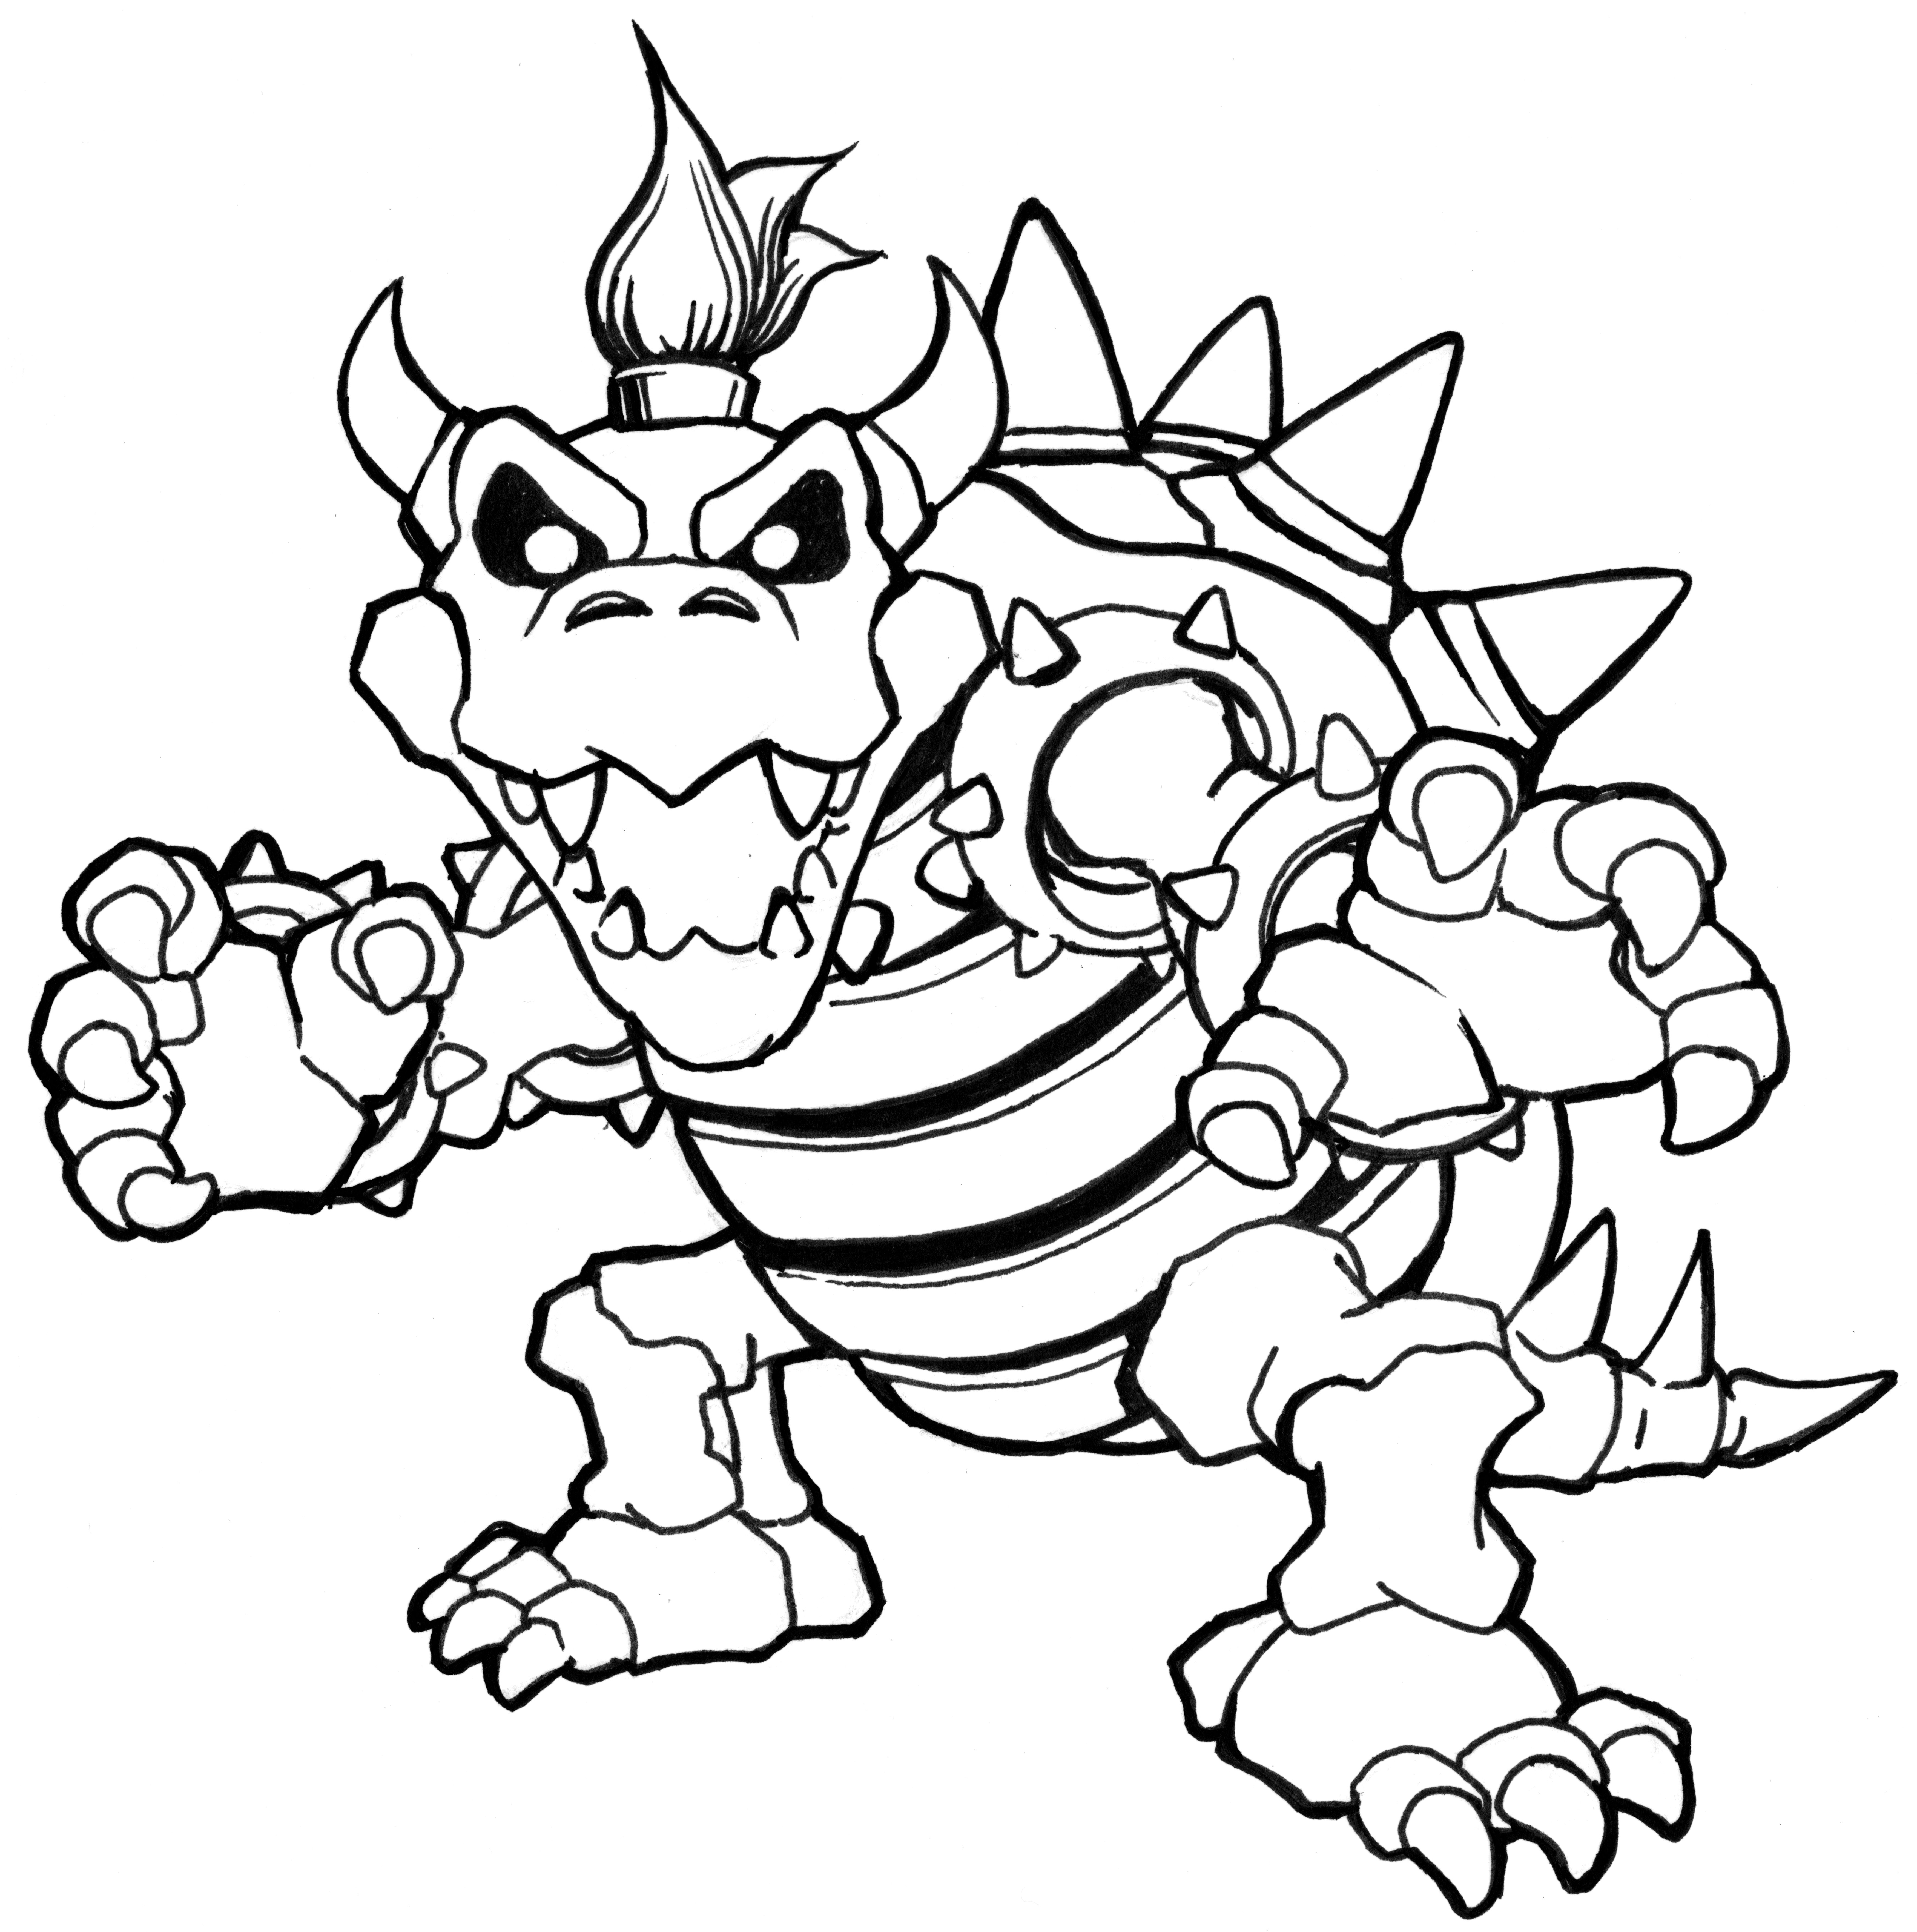 The Best Free Bowser Coloring Page Images Download From 317